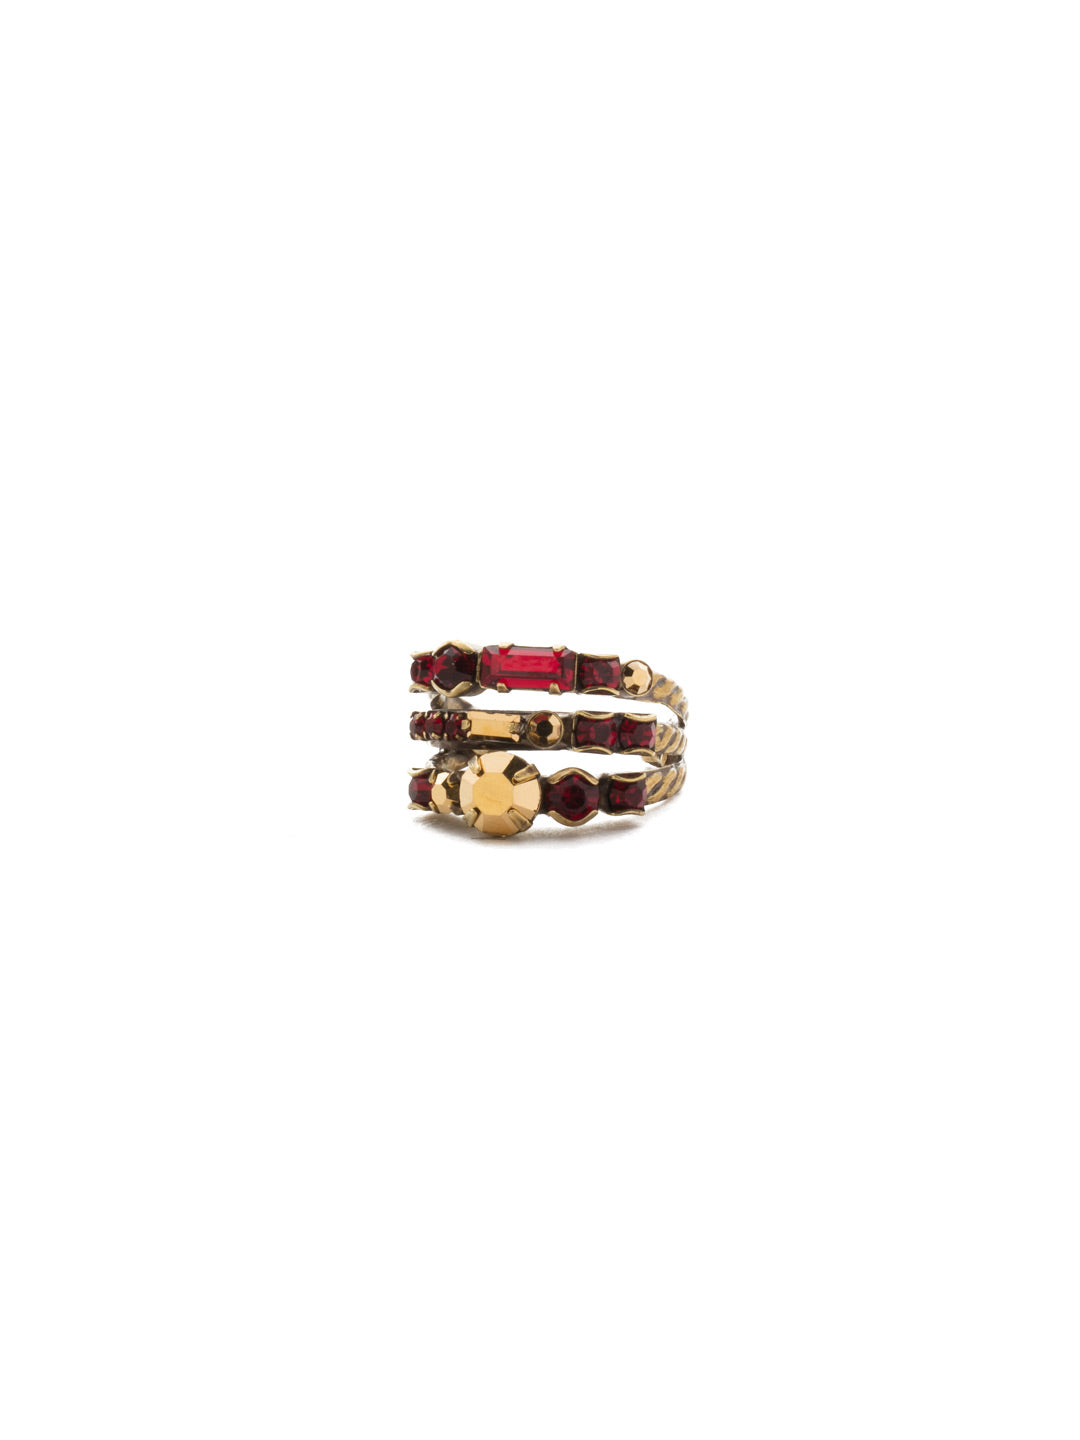 Triple Threat Stacked Ring - RDK23AGGGA